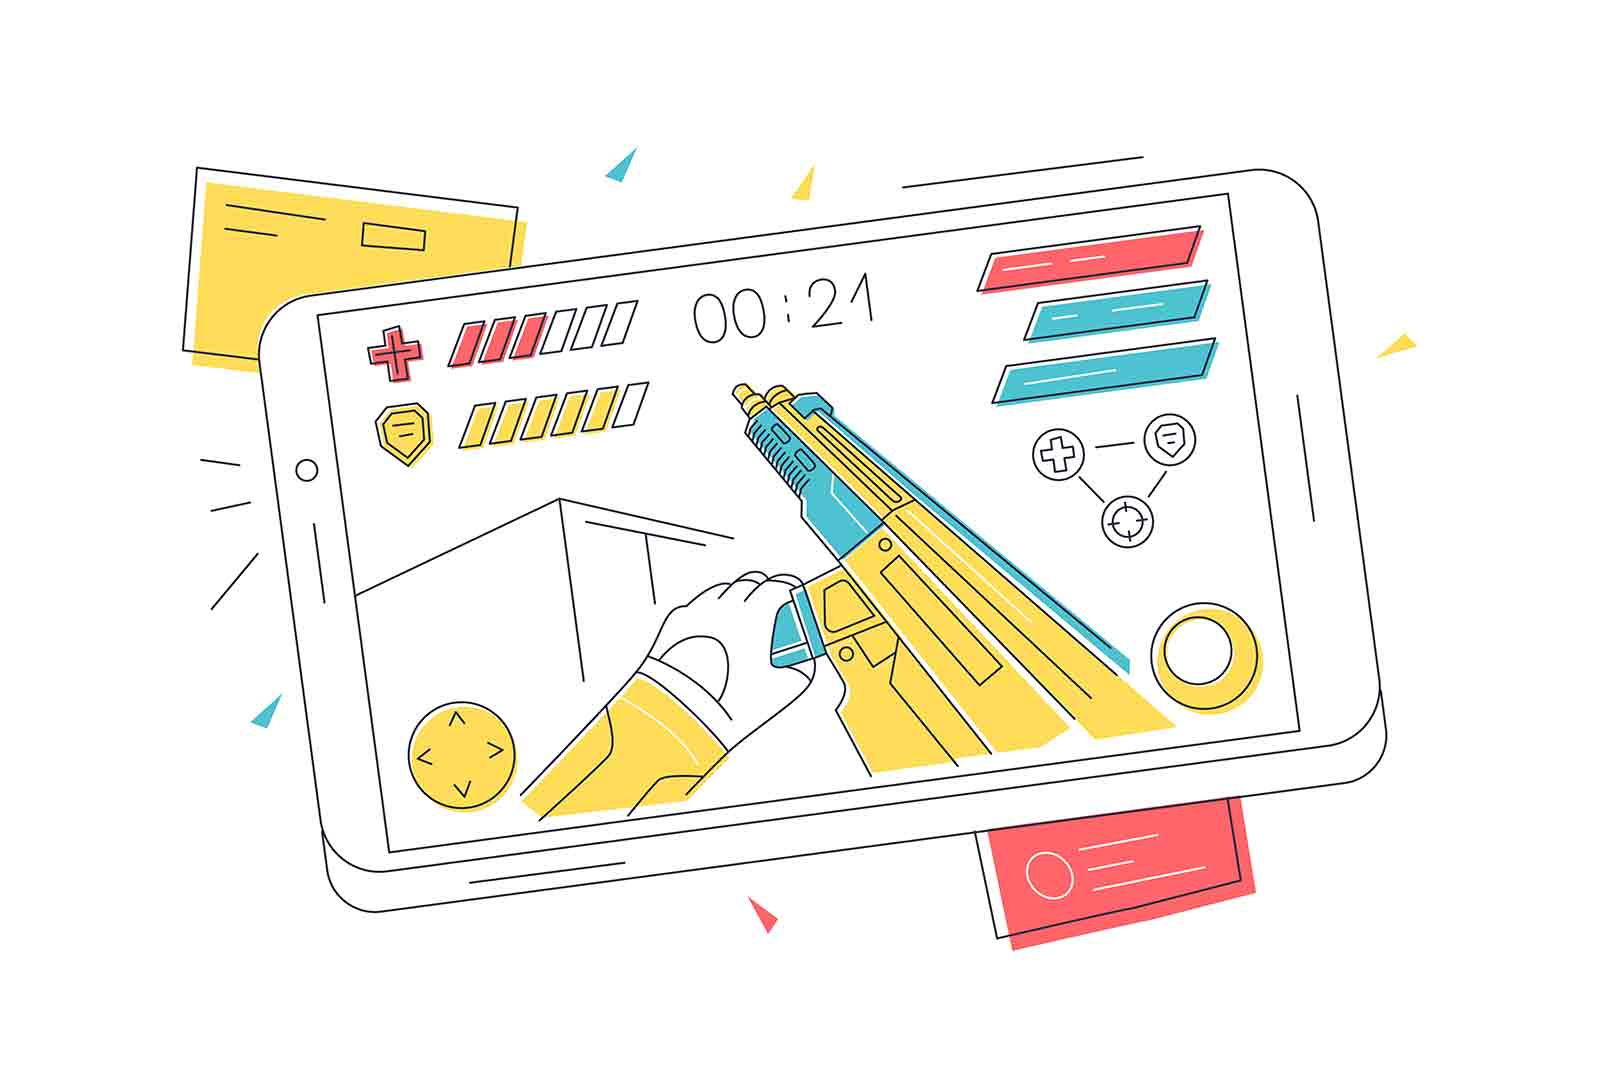 Video game on mobile phone vector illustration. Smartphone screen with online video game linear. Entertainment, fun, pastime concept